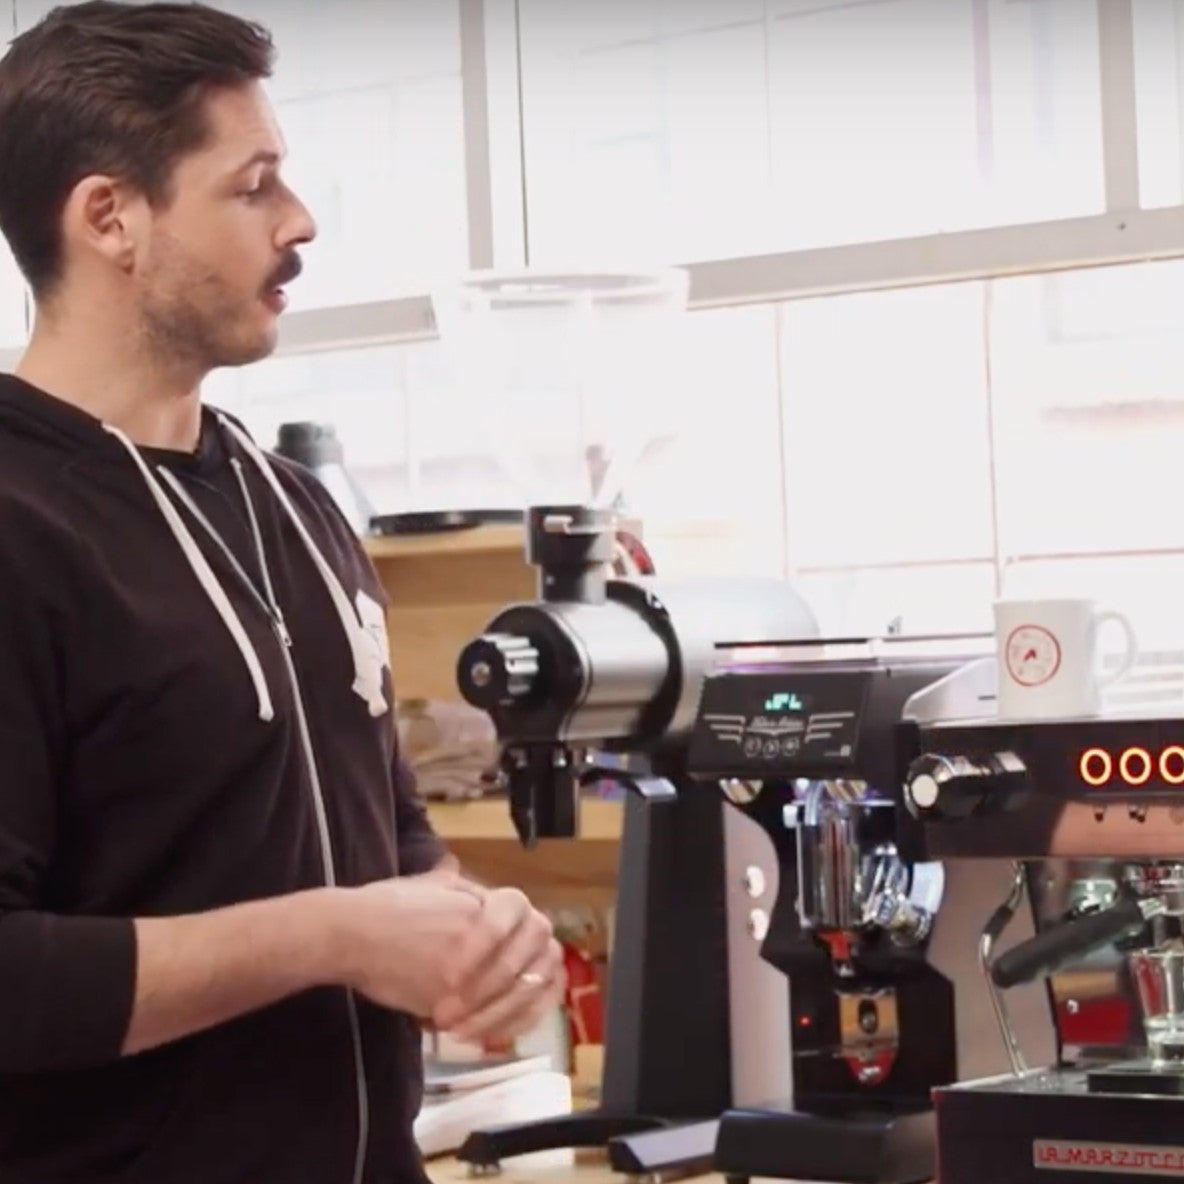 Tech Tips: How To Programme The La Marzocco Linea PB